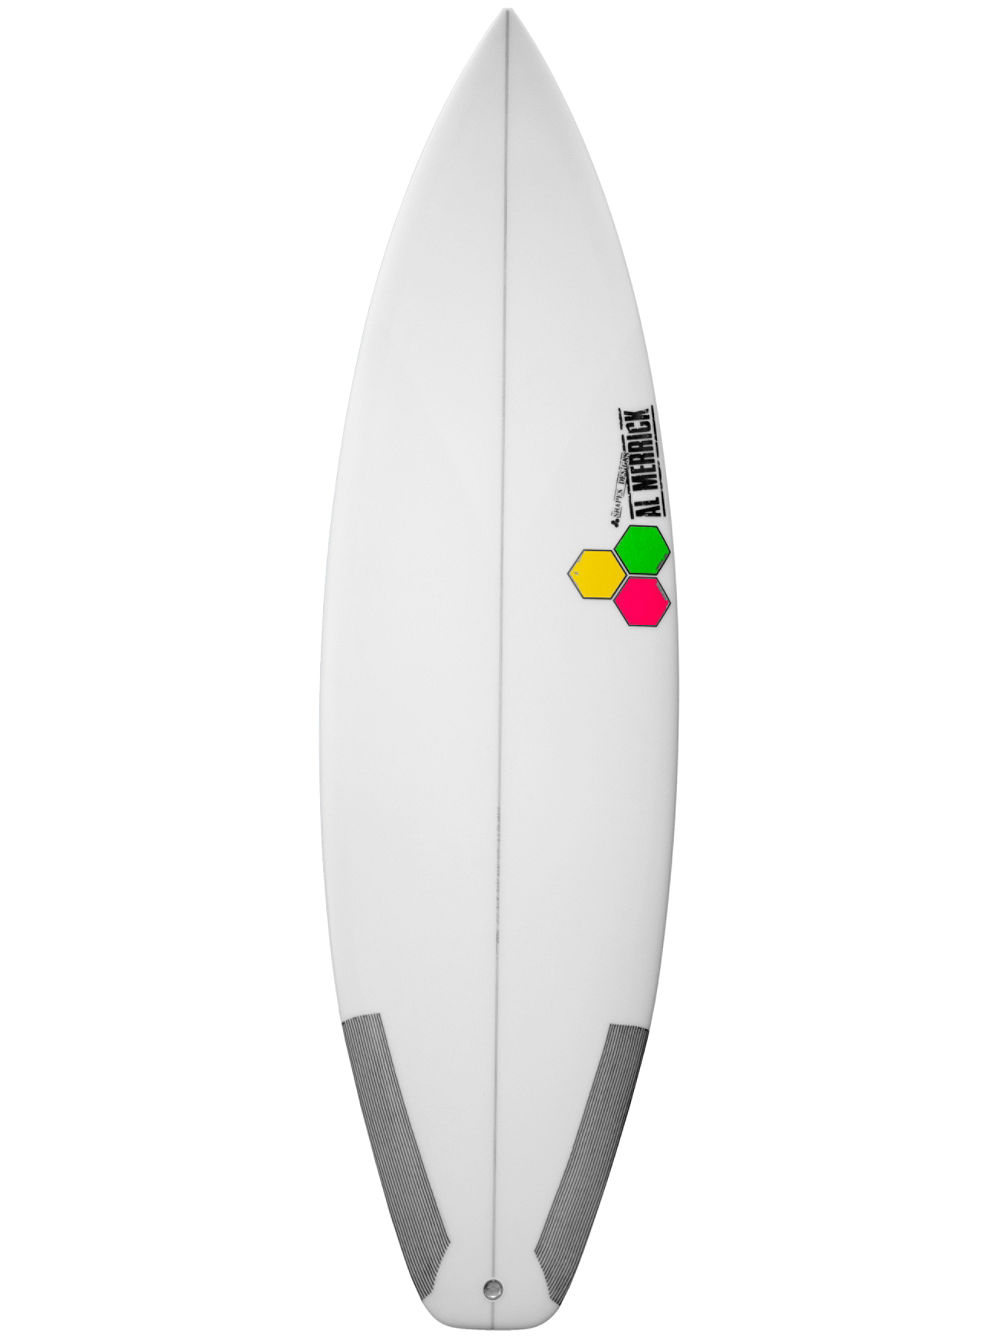 New Flyer 5'4 Surfboard